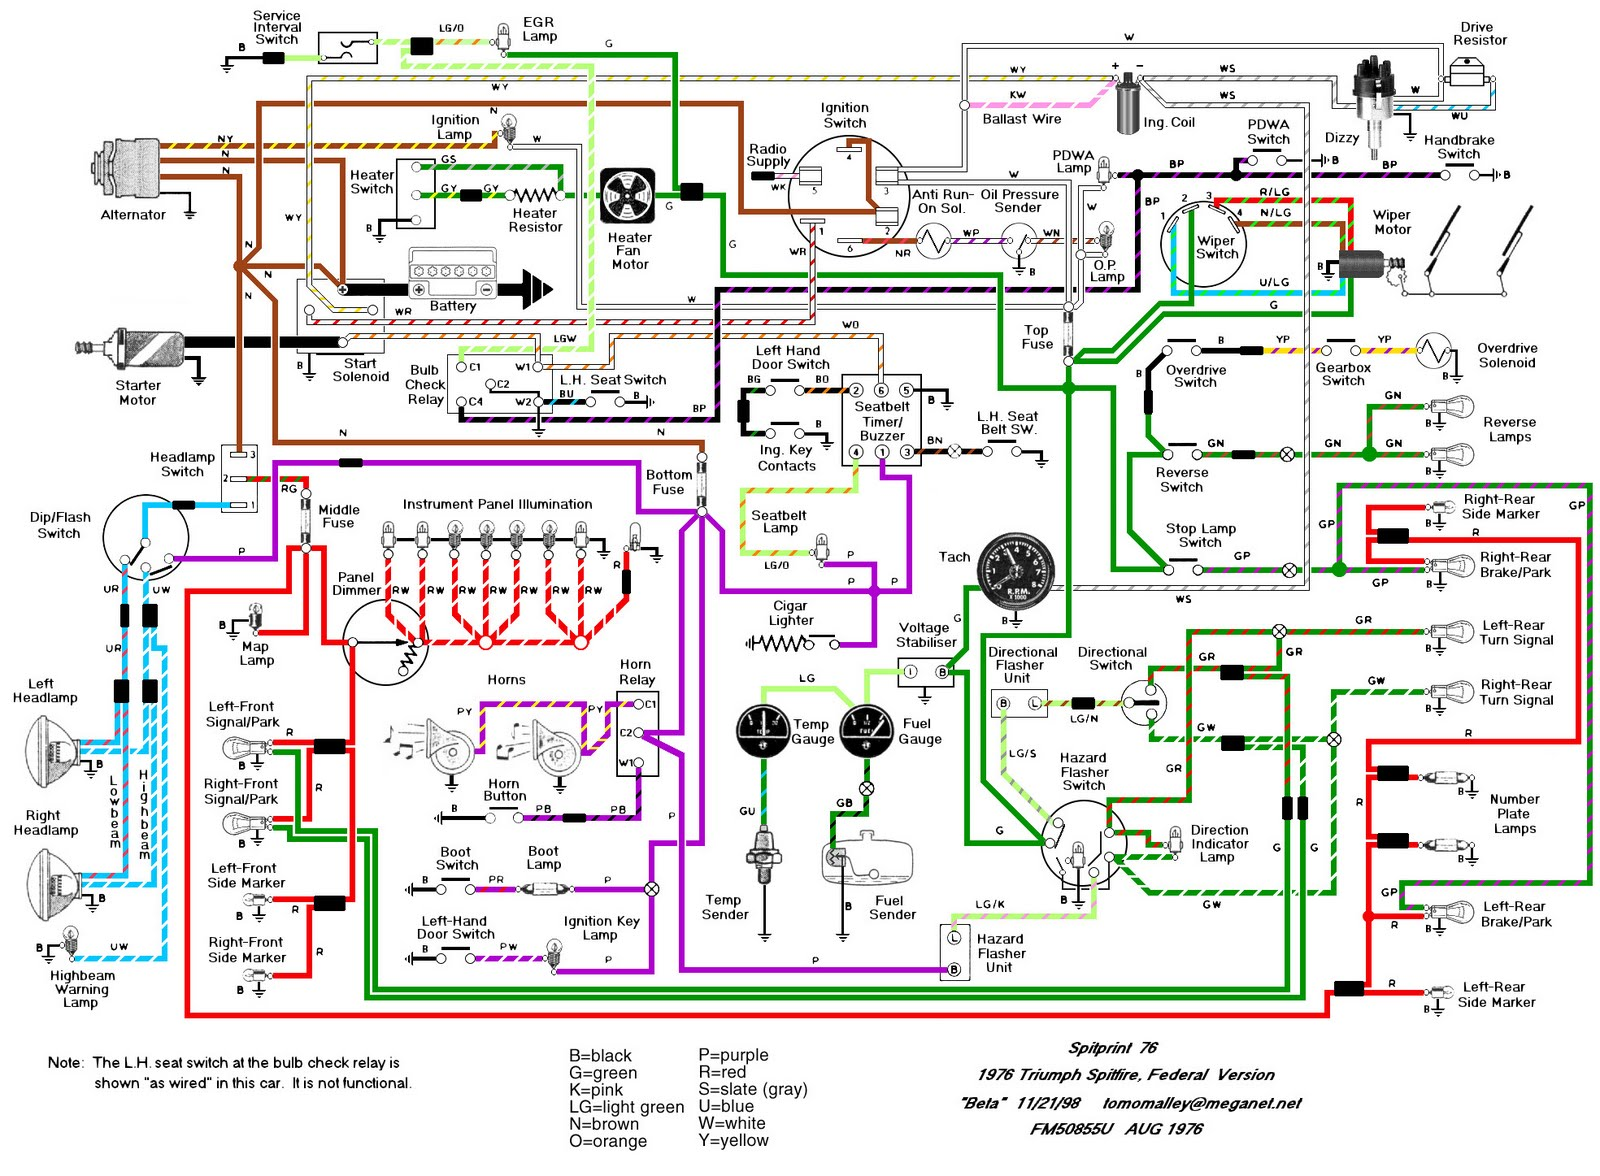 Triumph Spitfire Wiring Diagram on Factory Car Stereo Wiring Diagrams